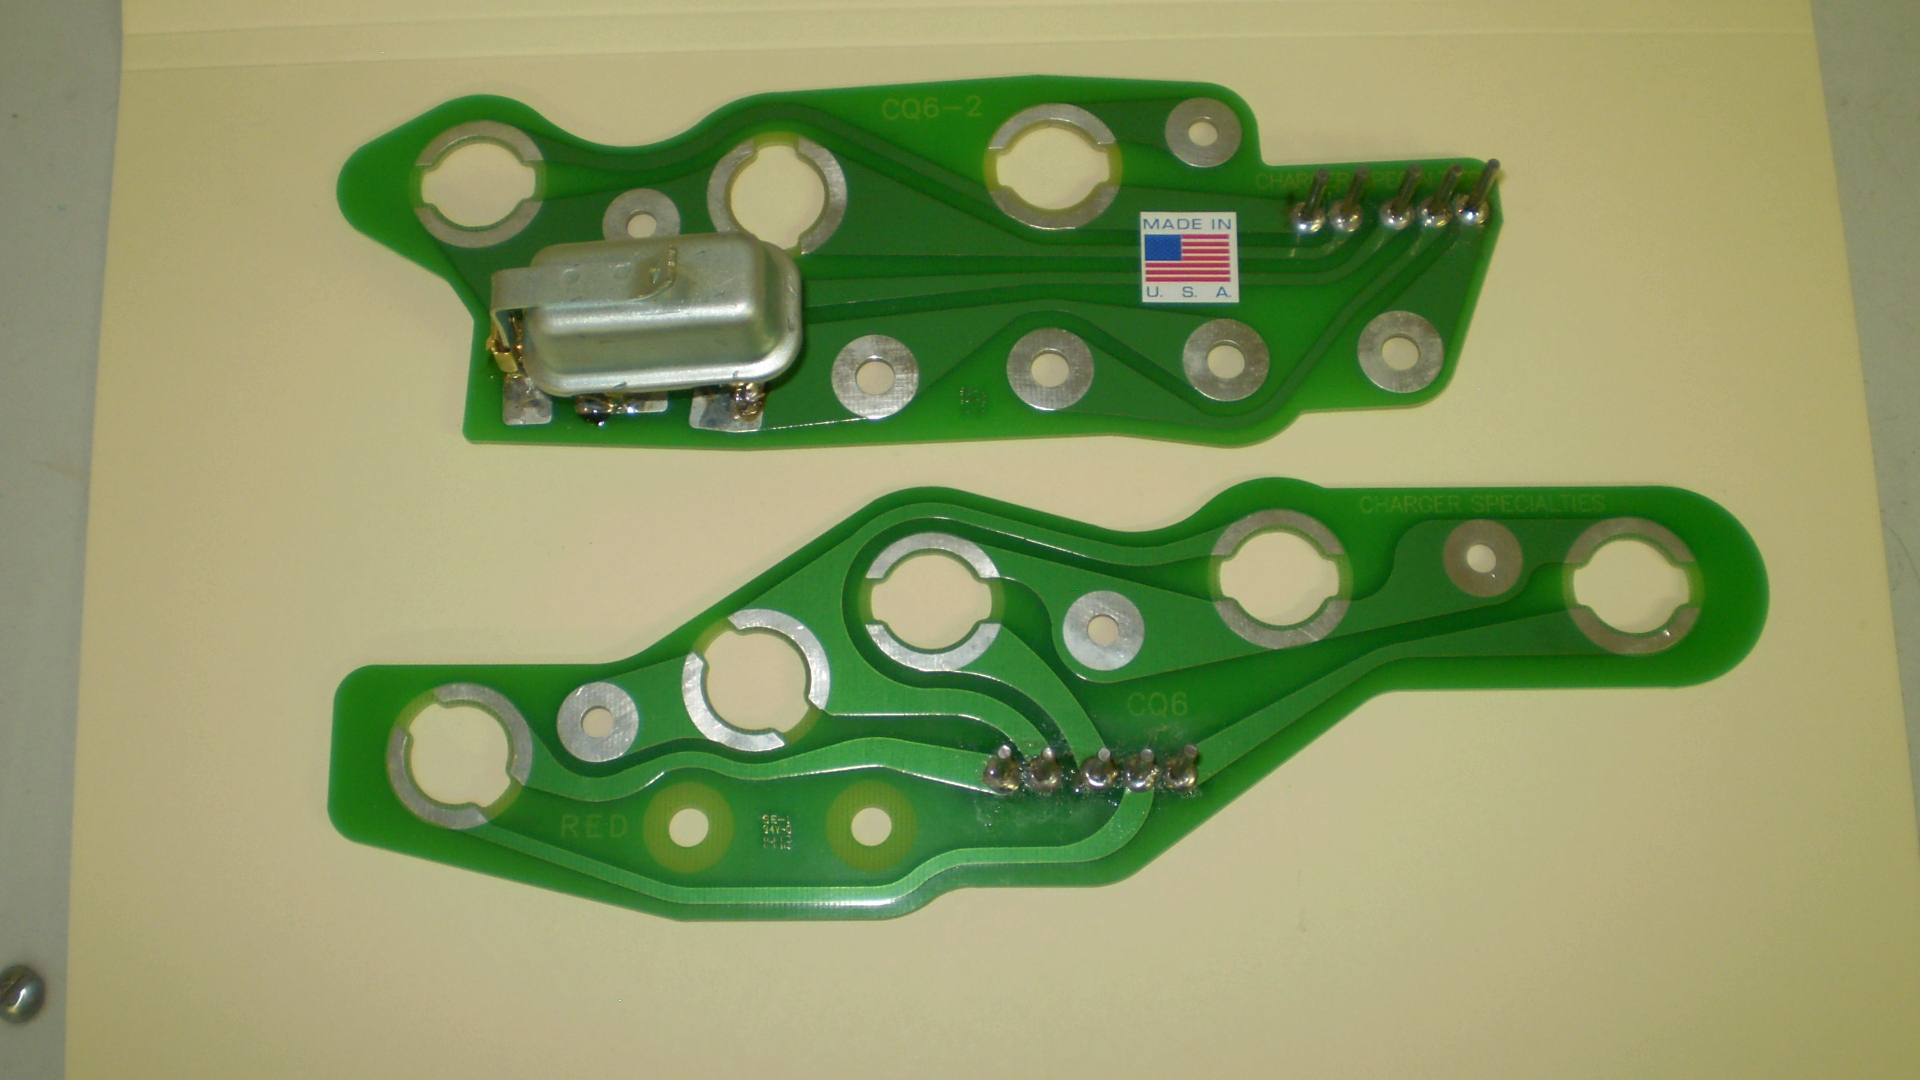 1967 - 71 A-BODY DART DEMON NON-RALLY CIRCUIT BOARD WITH LIMITER